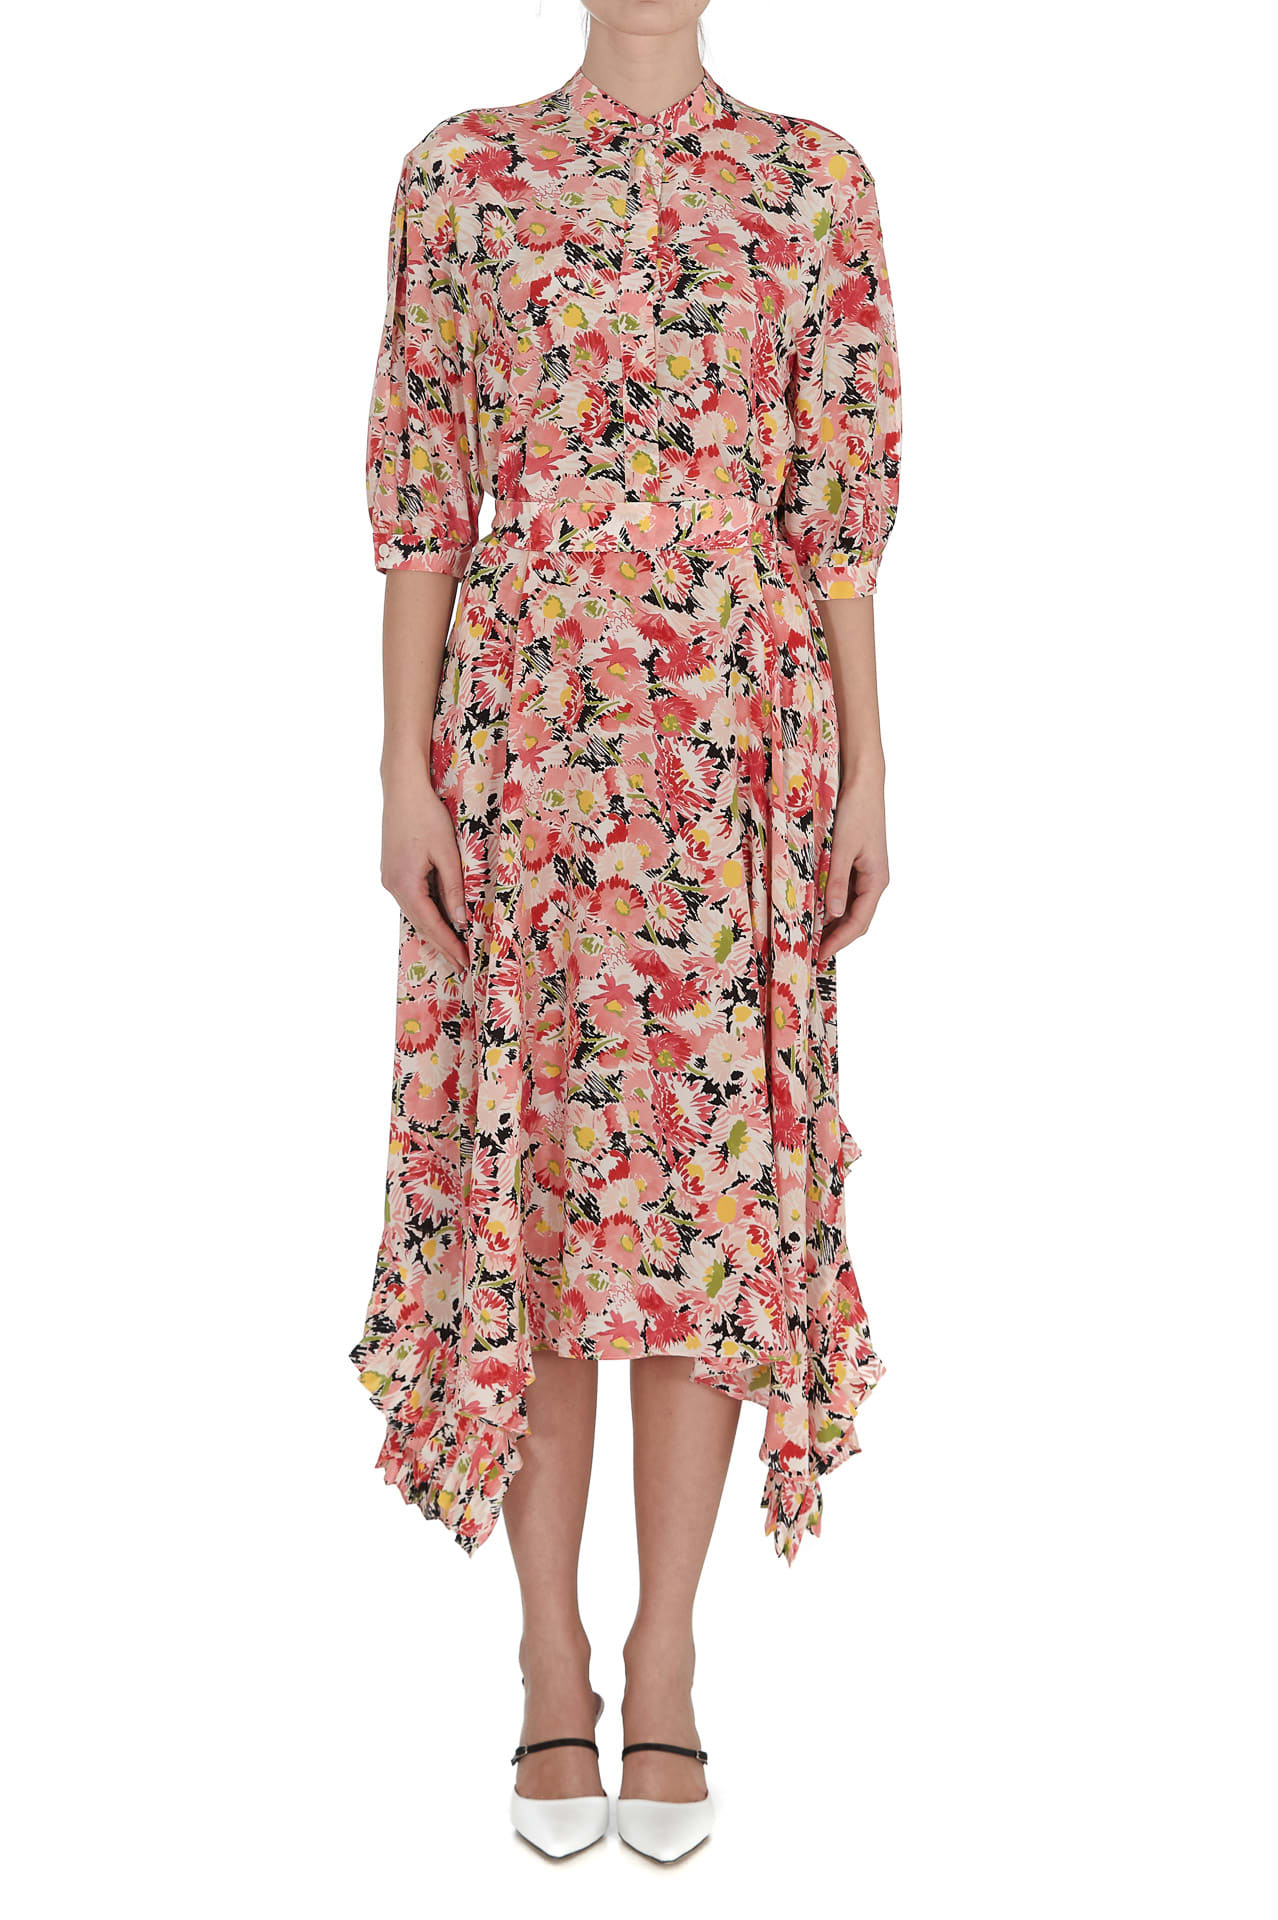 Stella Mccartney STELLA MCCARTNEY DRESS